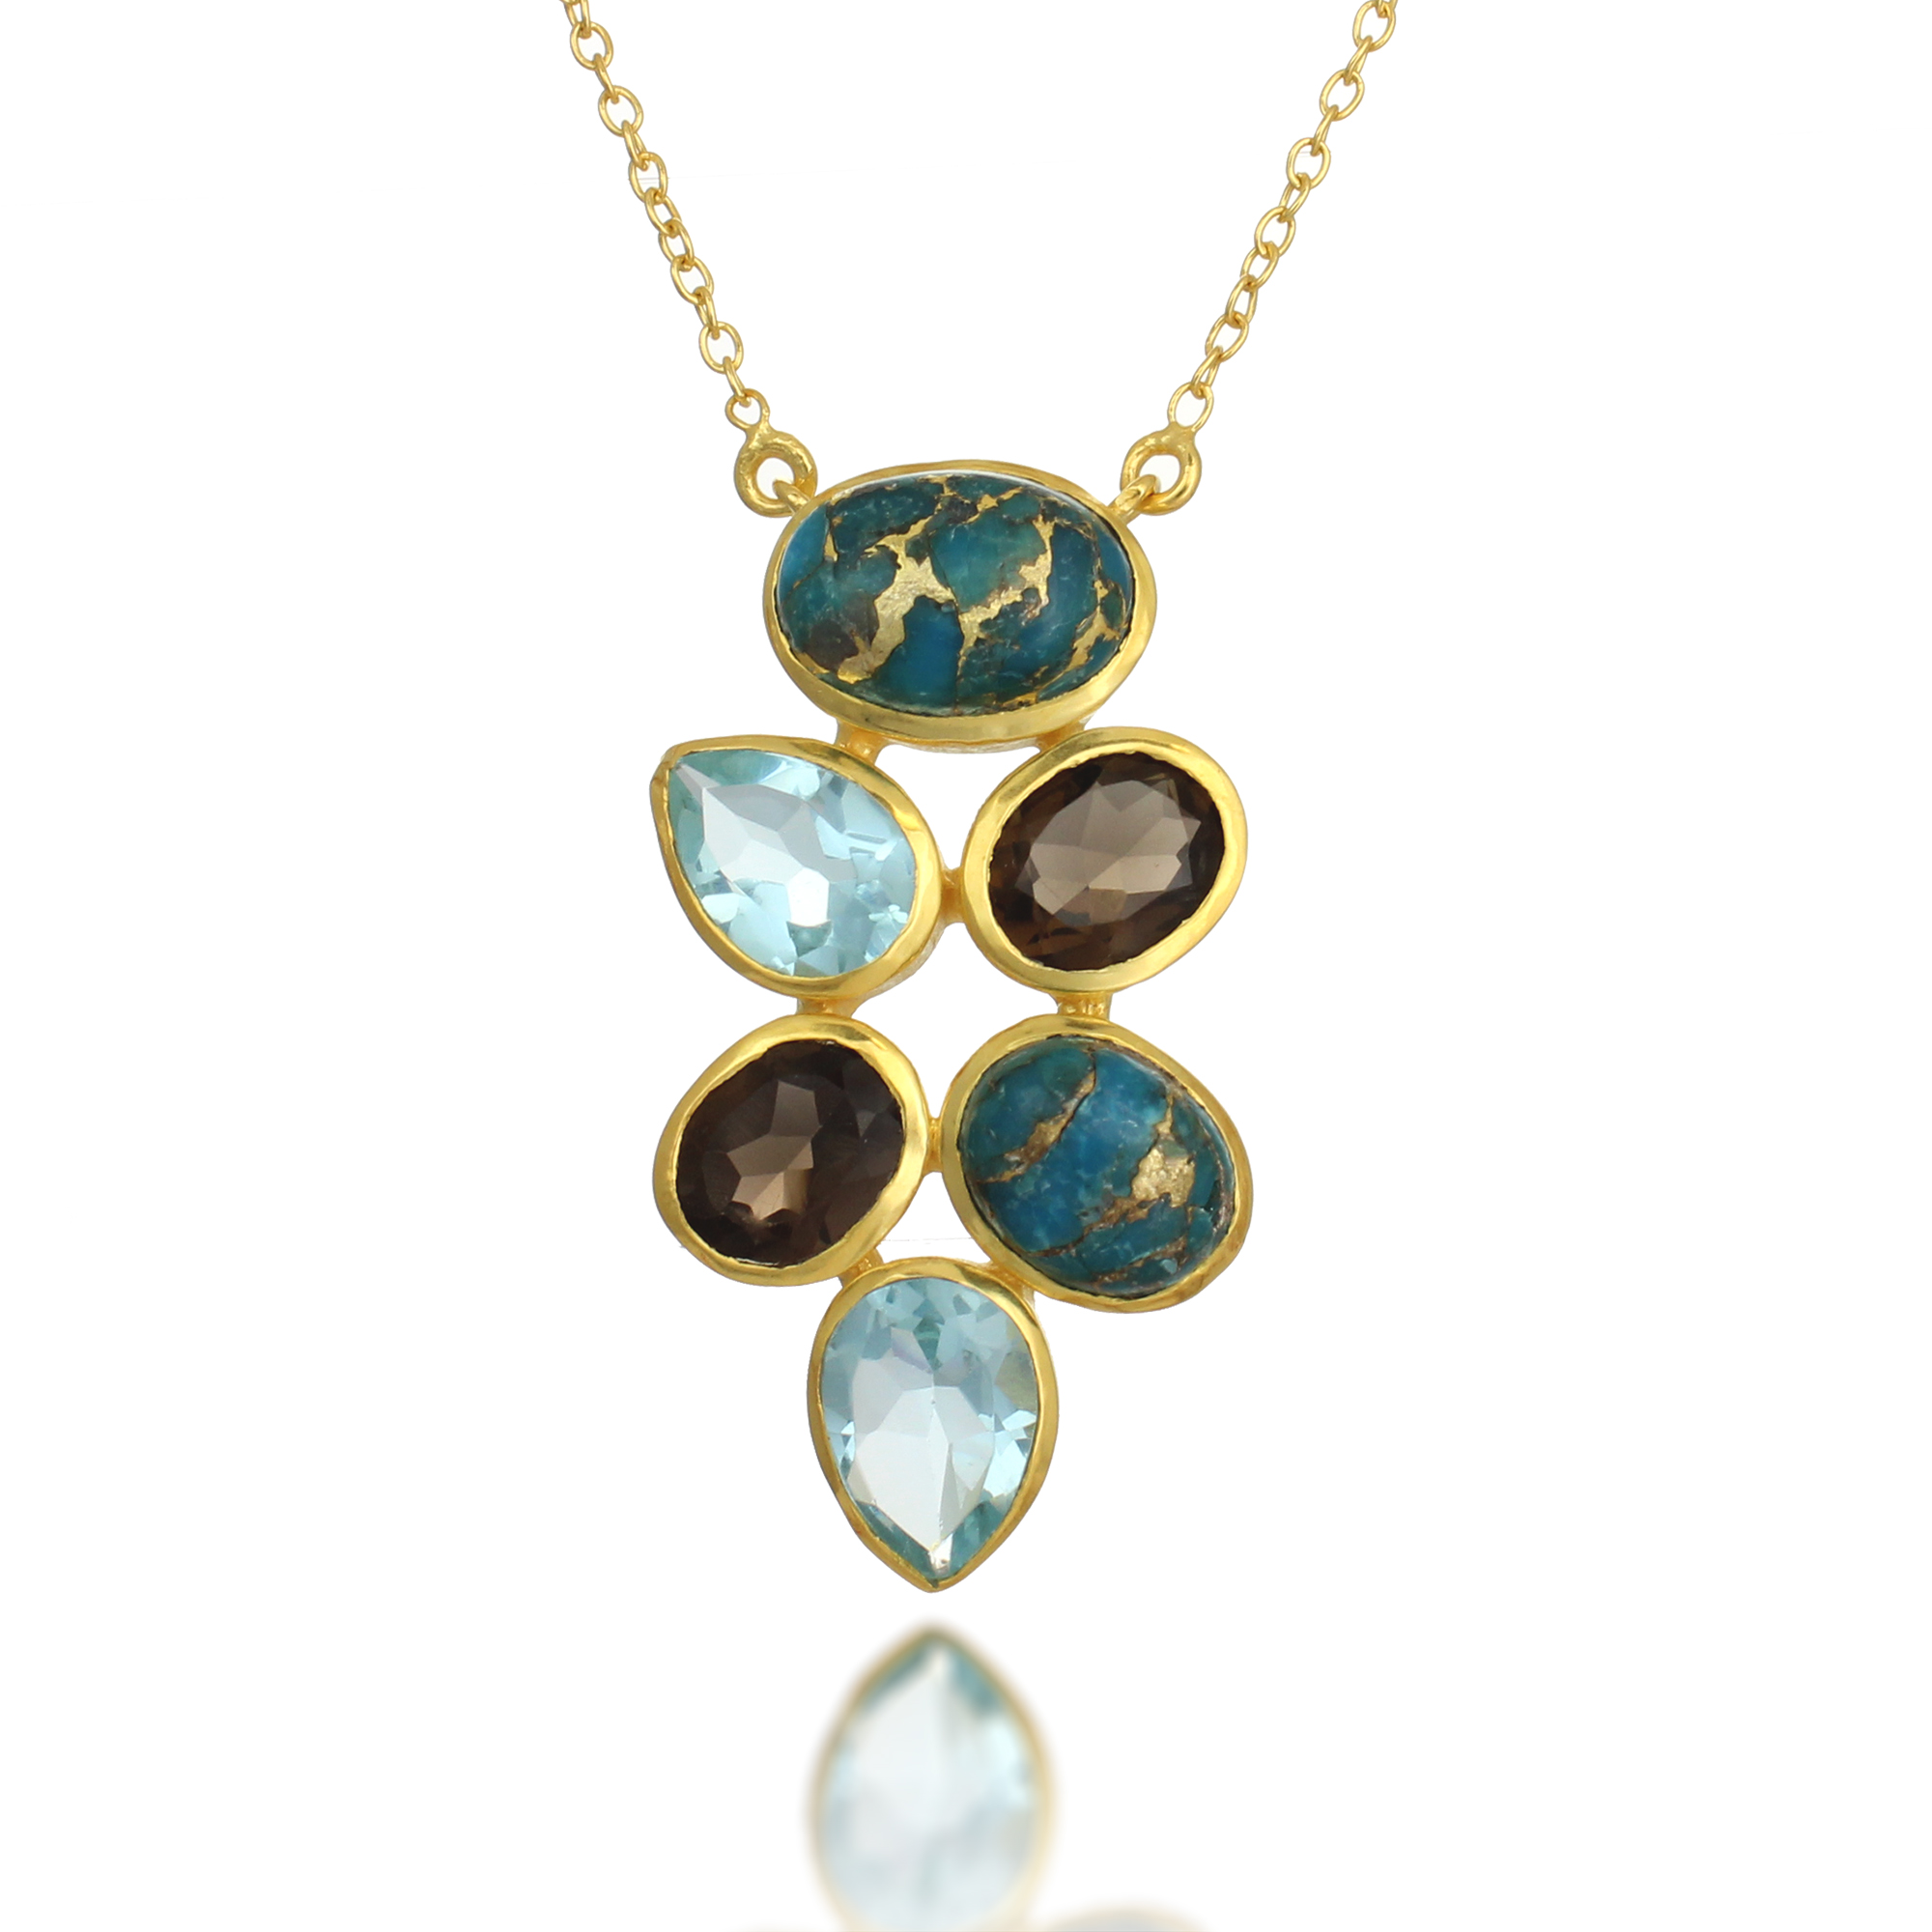 18K Gold-Plated Blue Topaz, Turquoise, and Smoky Quartz Gemstone Pendant Necklace, 18-19 inches